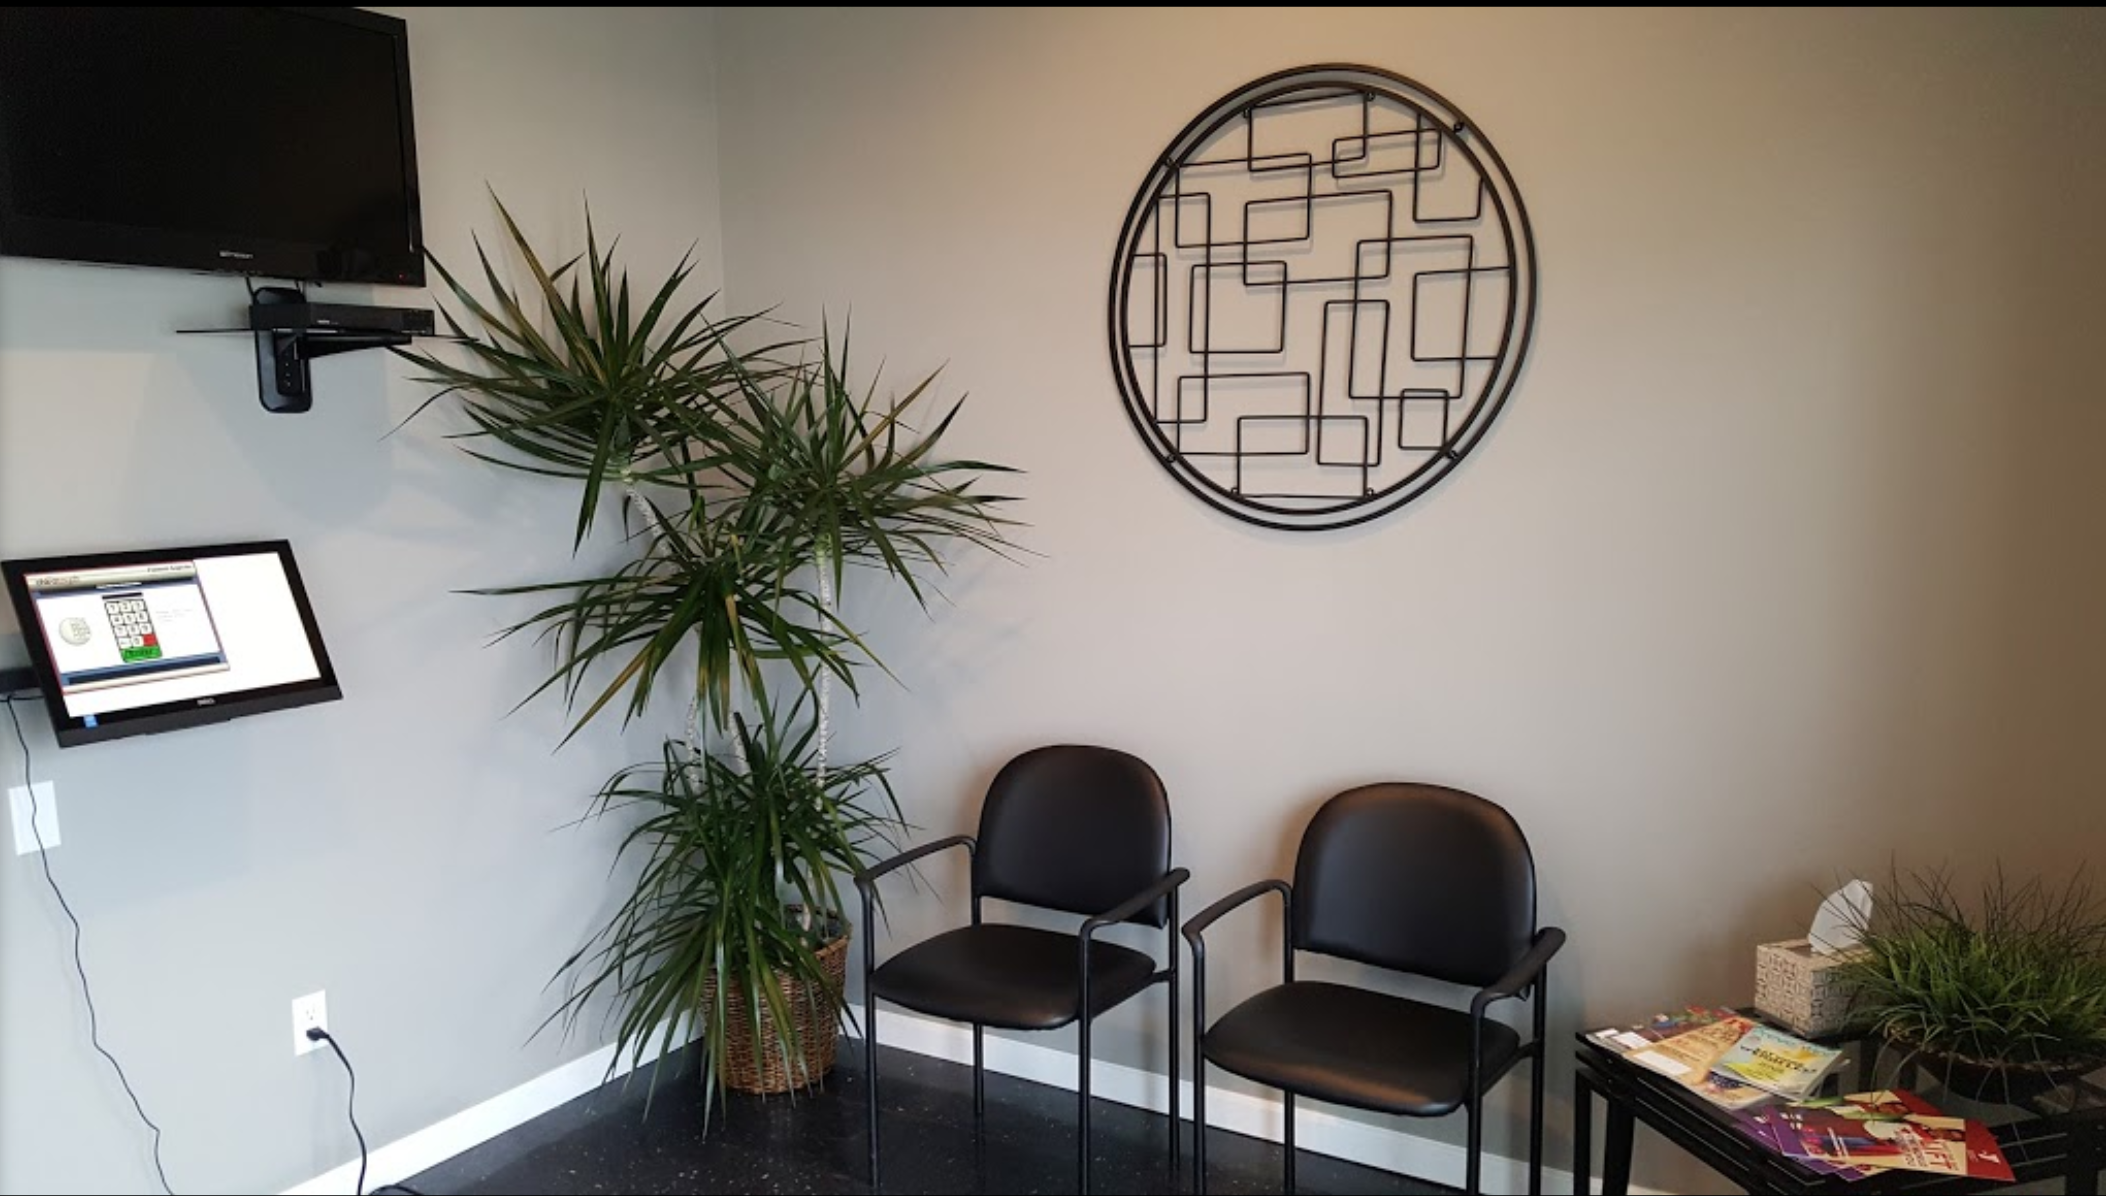 Arbavada Chiropractic & Wellness Center